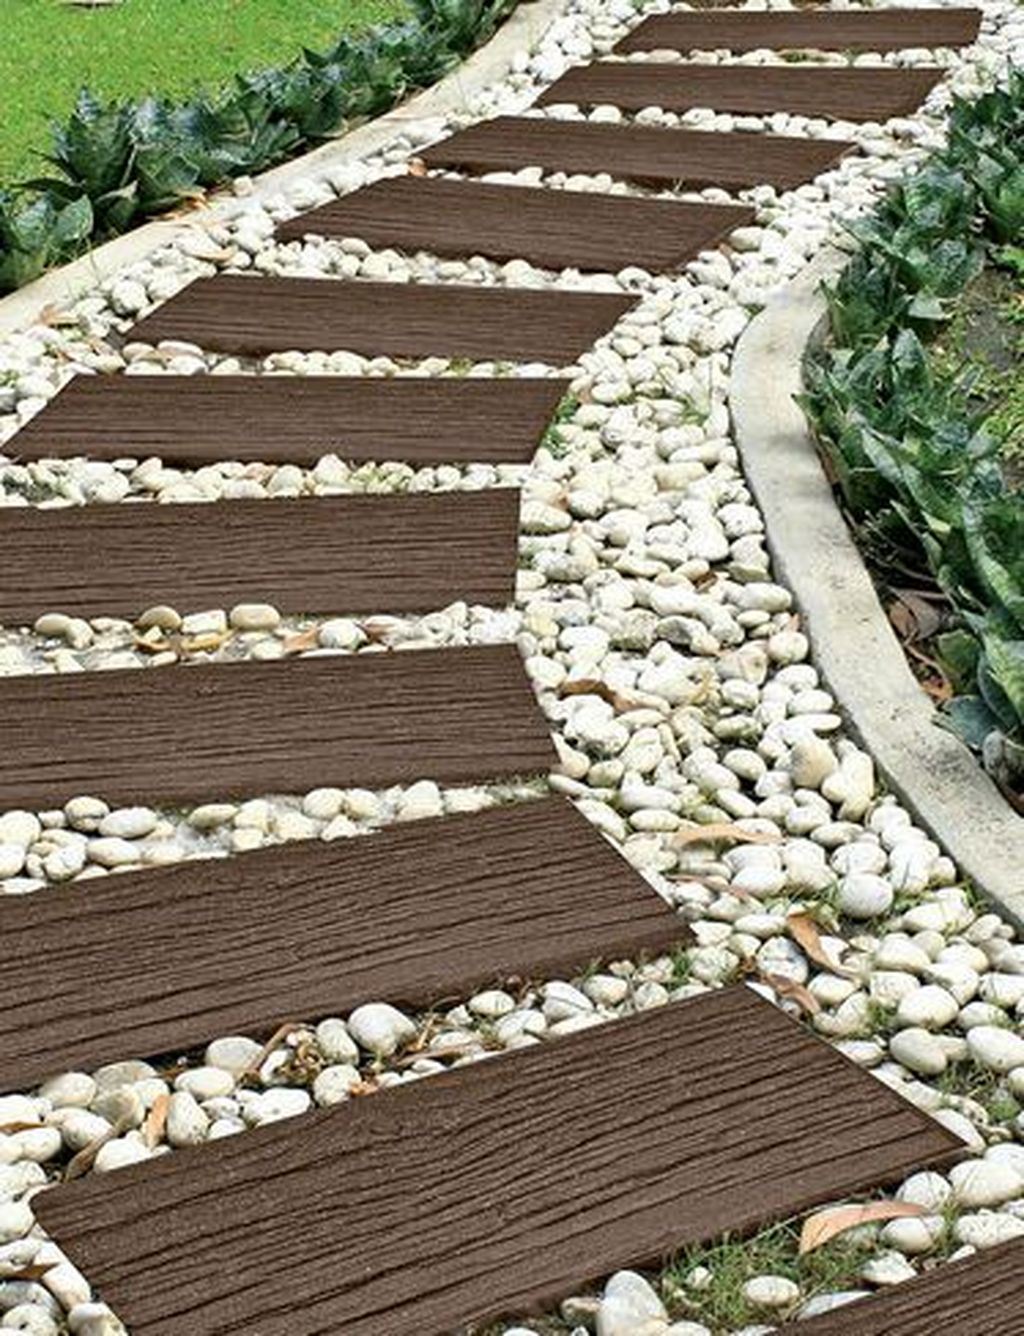 Stunning Stepping Stones Pathway Design Ideas 09